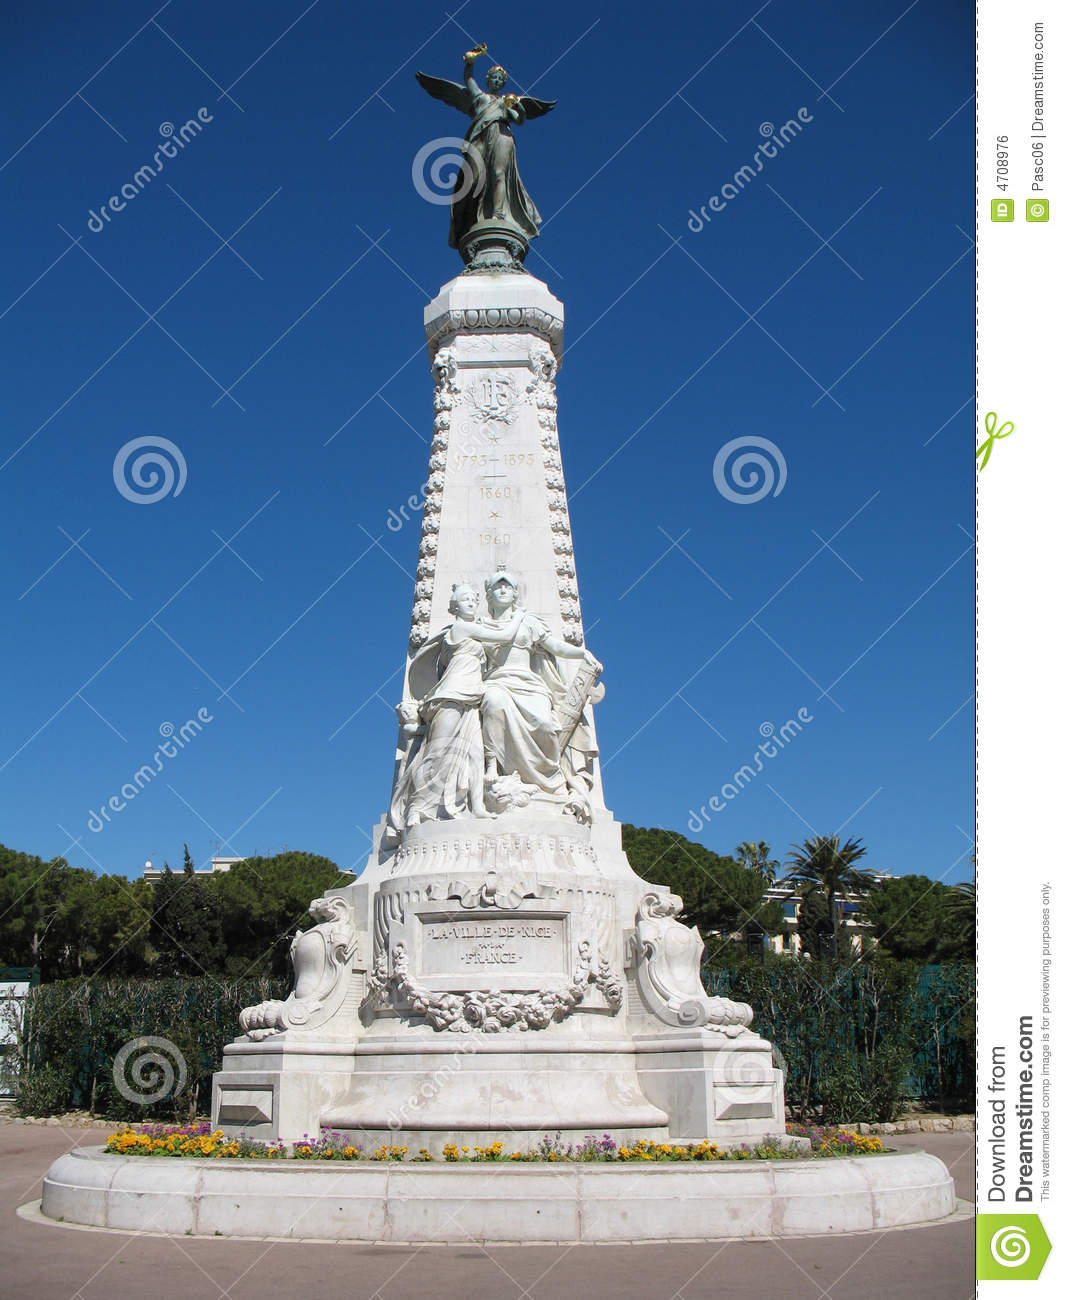 French Riviera monument in Nic